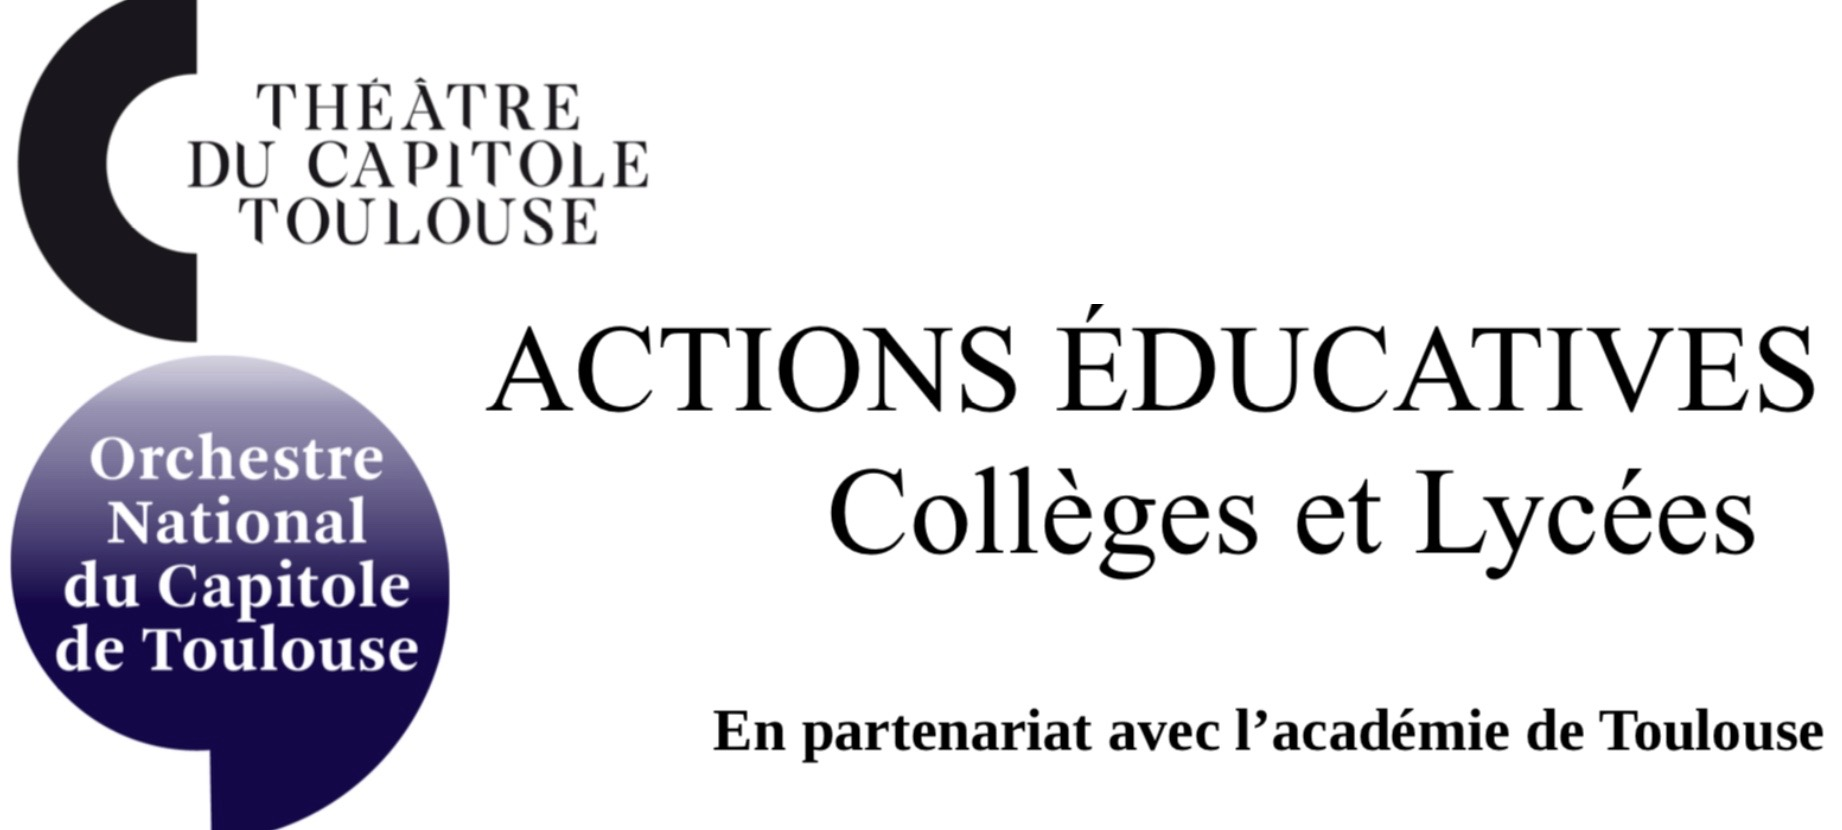 actions_educatives_capitole.jpeg